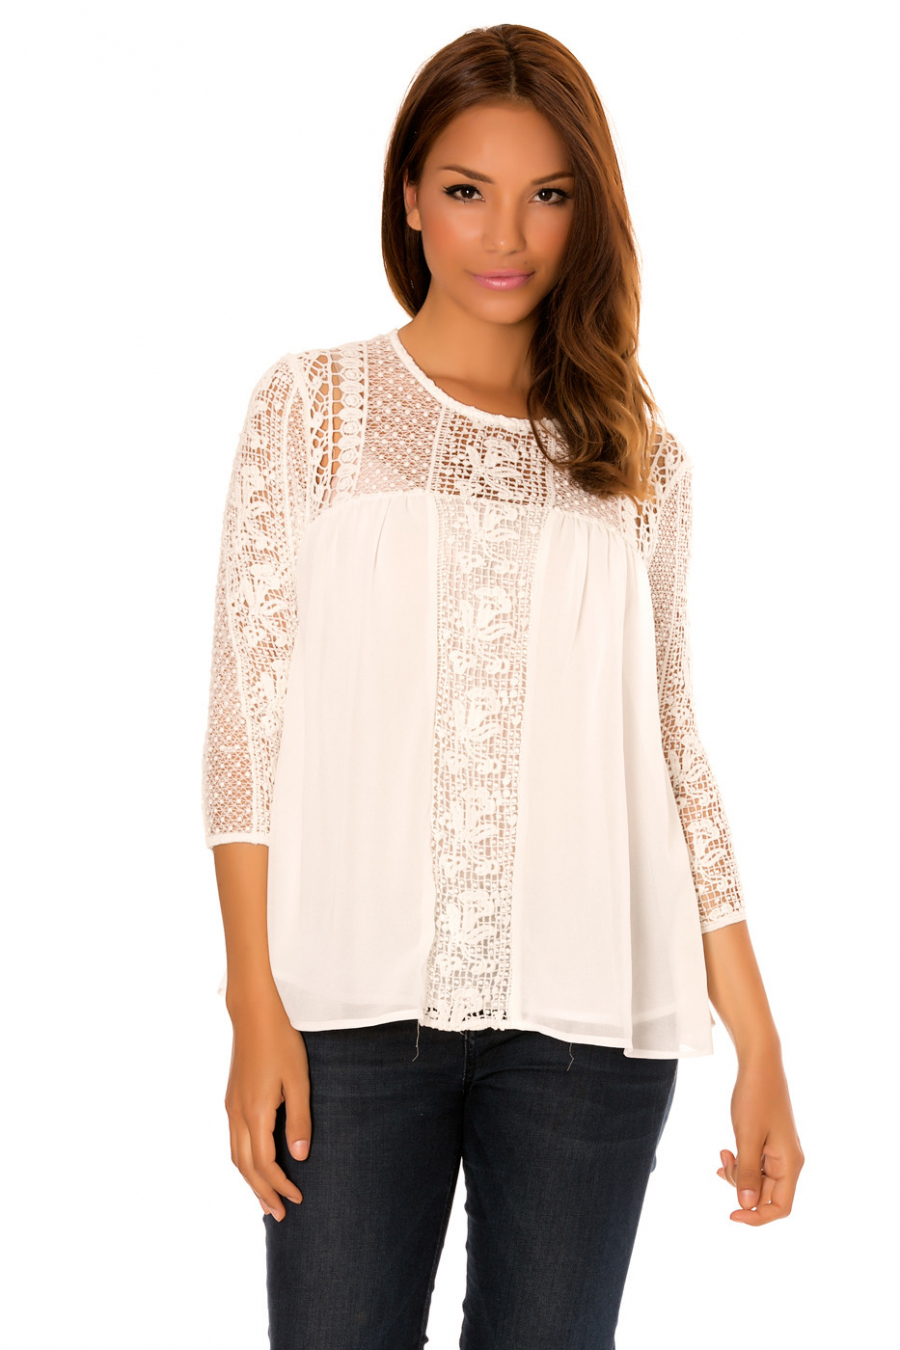 White top with 3/4 sleeves, in lace with lining. F2617